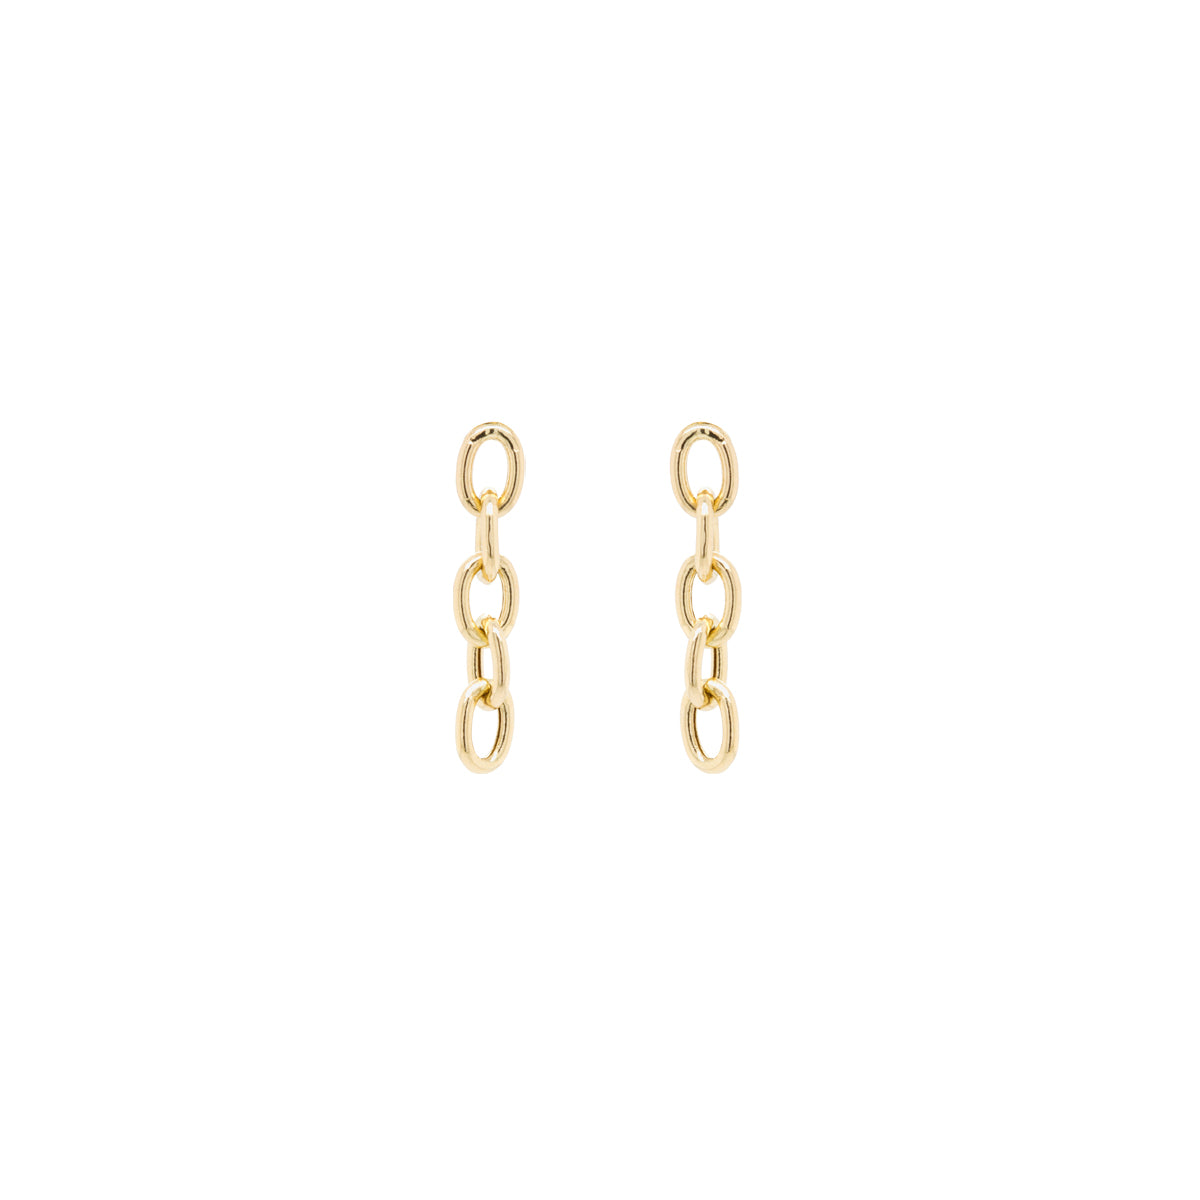 14k large oval link chain earrings